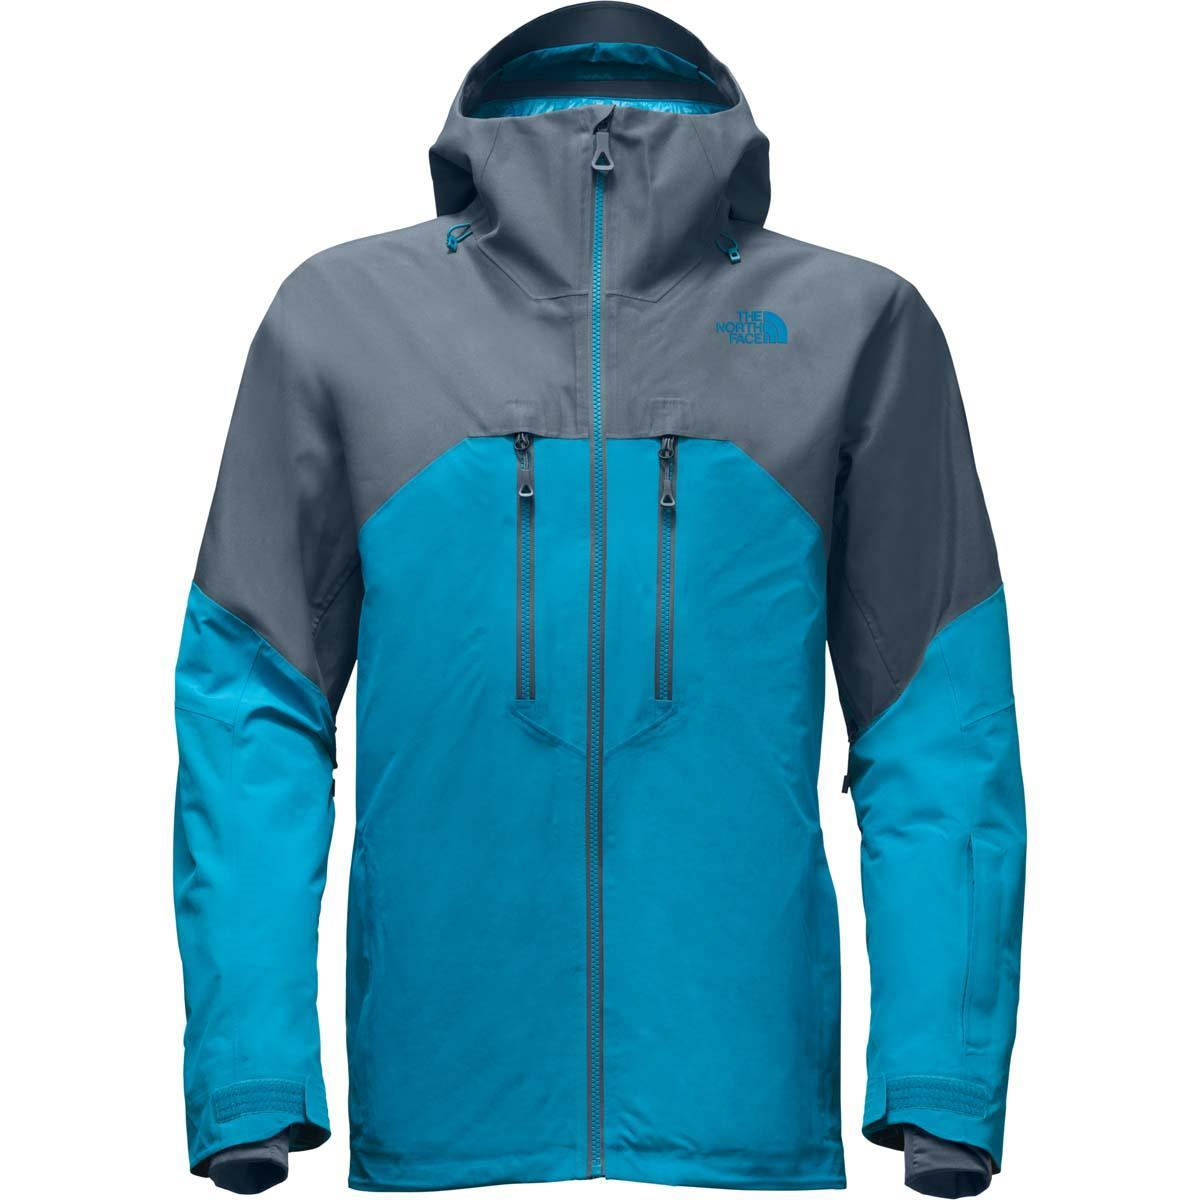 8020f98fd69c The North Face Powder Guide Jacket Mens. Loading zoom